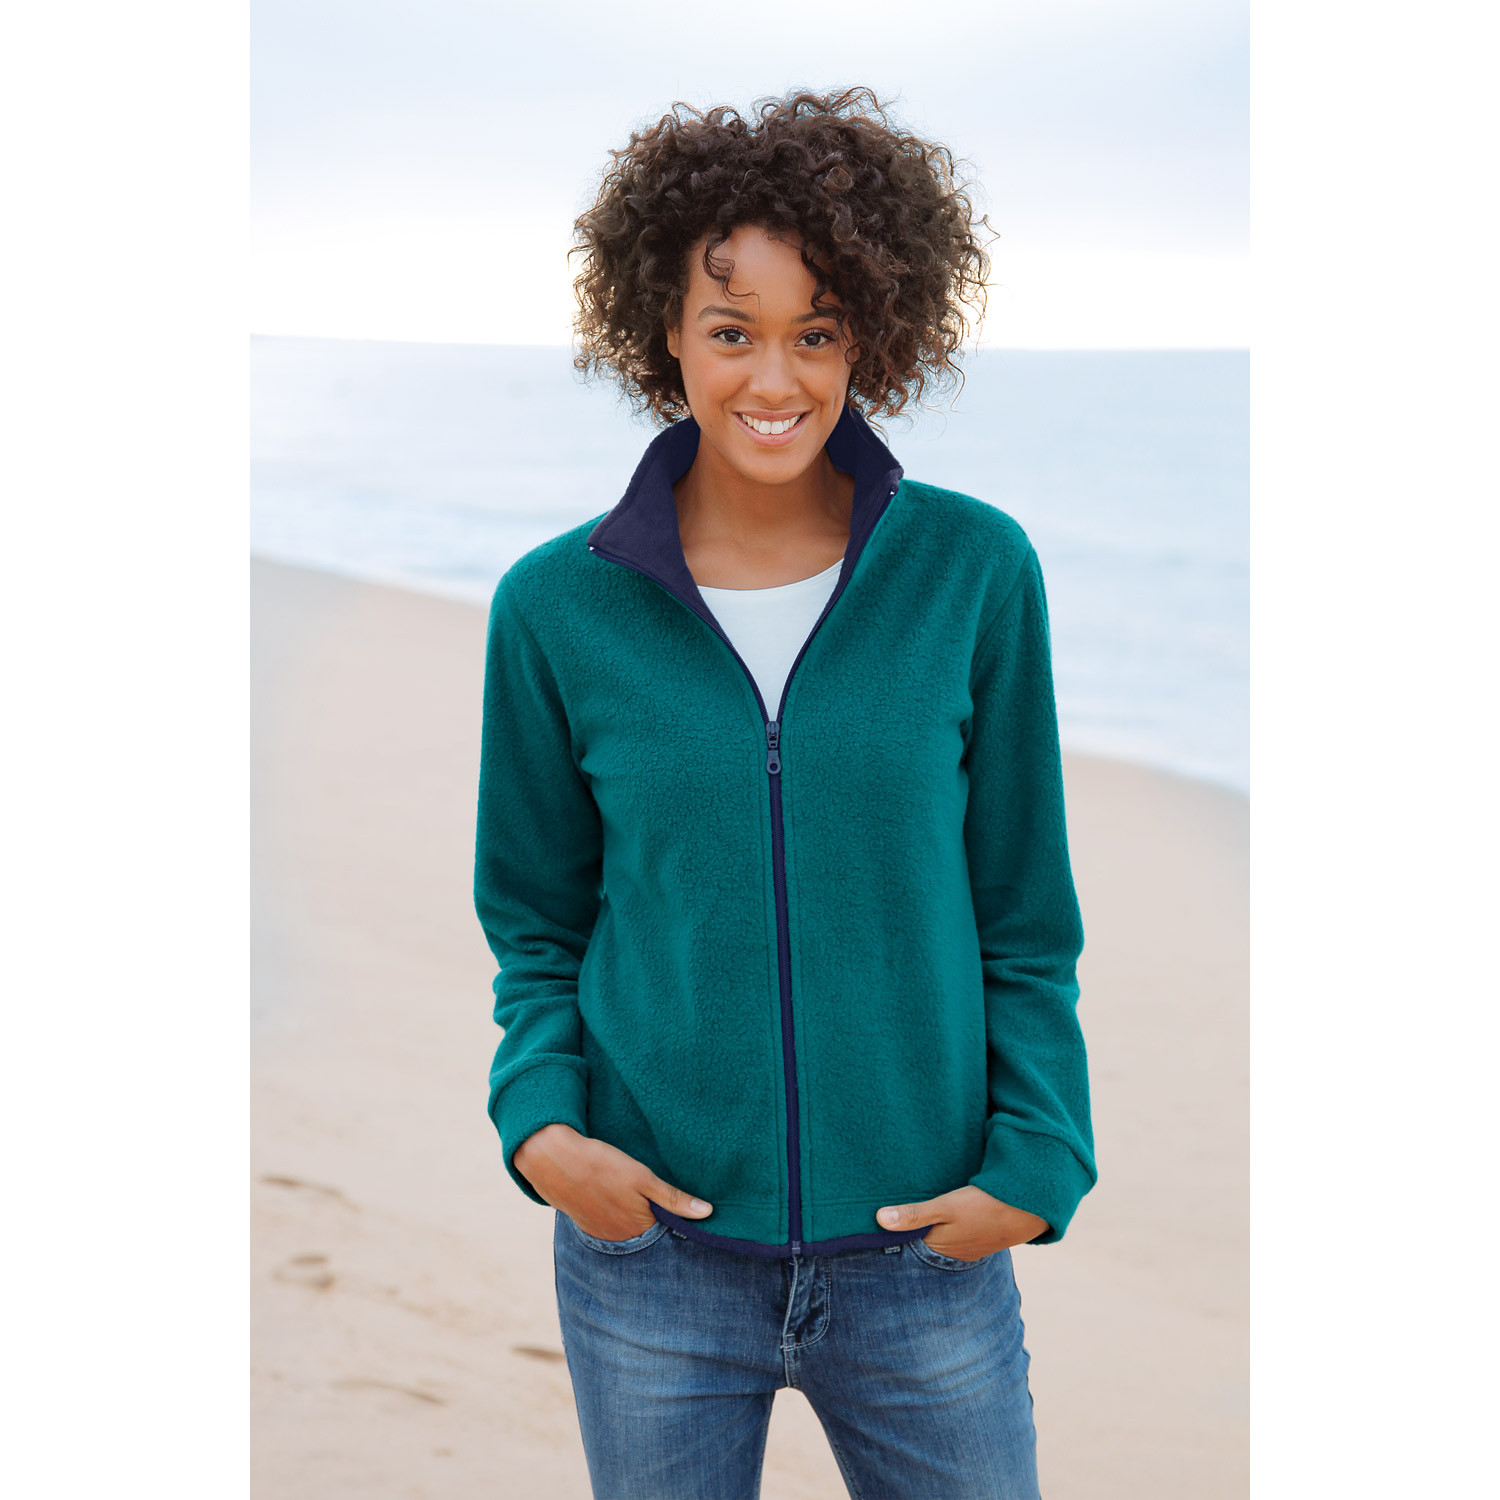 Fleece-Jacke, grau/anthrazit